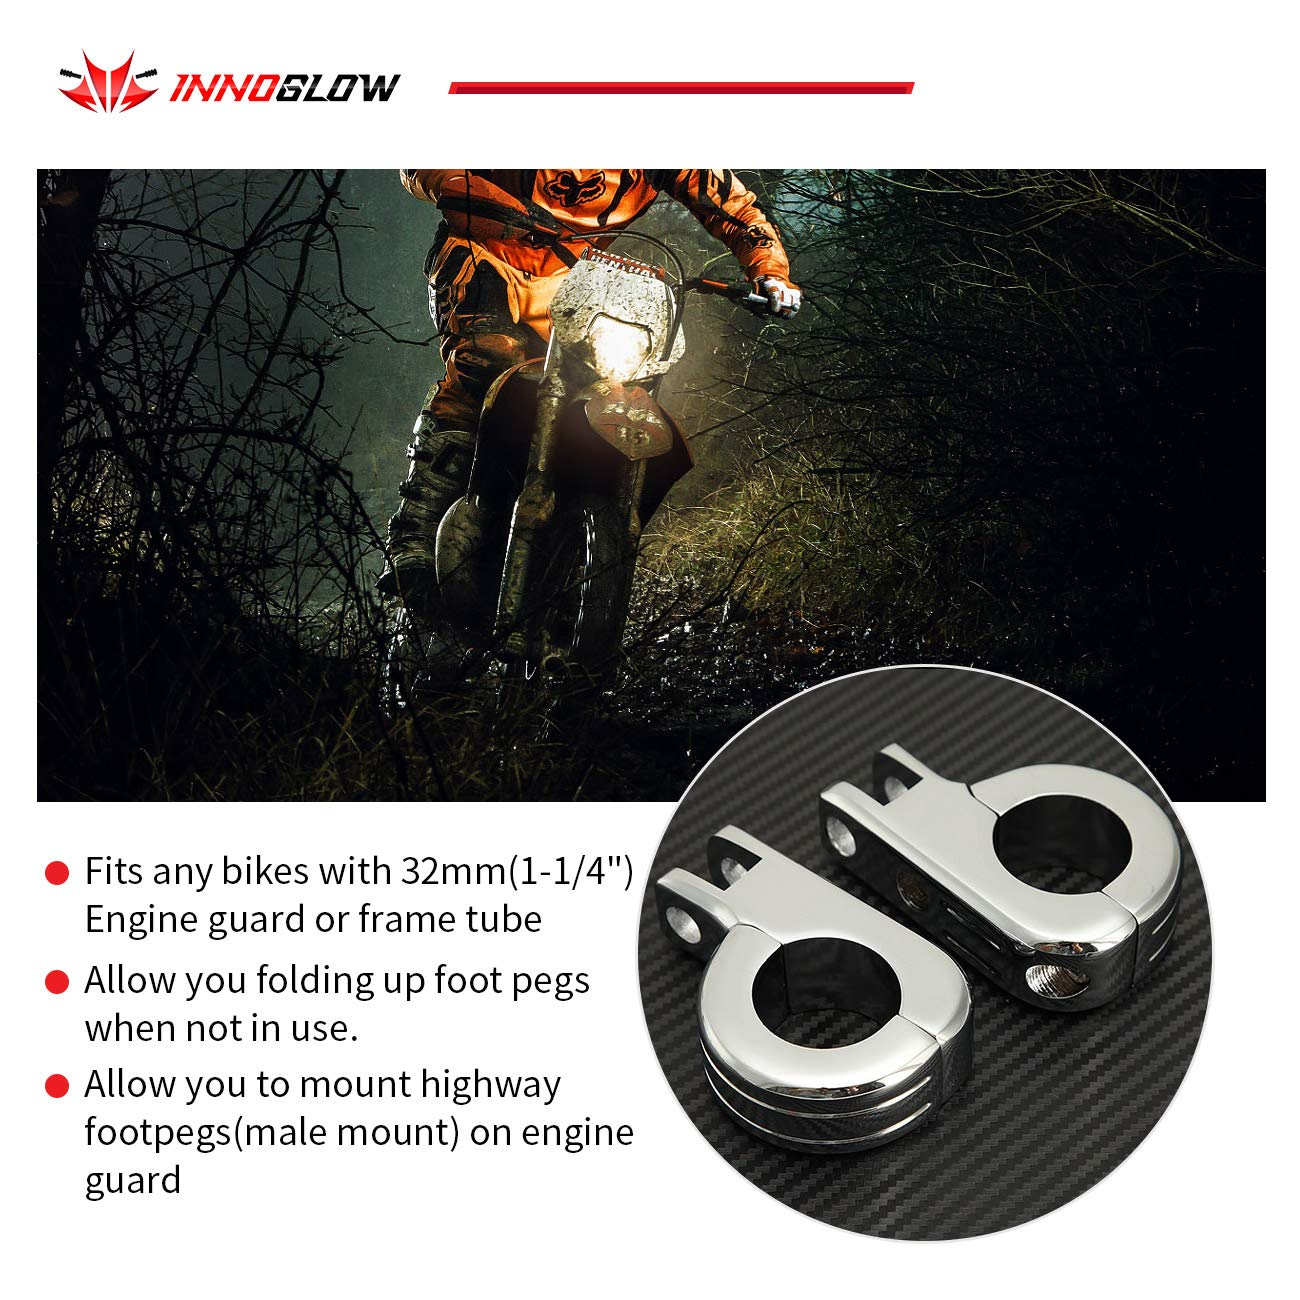 1-1//4 INNOGLOW Motorcycle Foot Pegs Footrest Highway Footpegs Footboards Mounting Kit For With 32mm Engine Guard Frame Tube Harley Davidson Honda Yamaha Kawasaki Triumph Bobber Chopper Cafe Racer G0